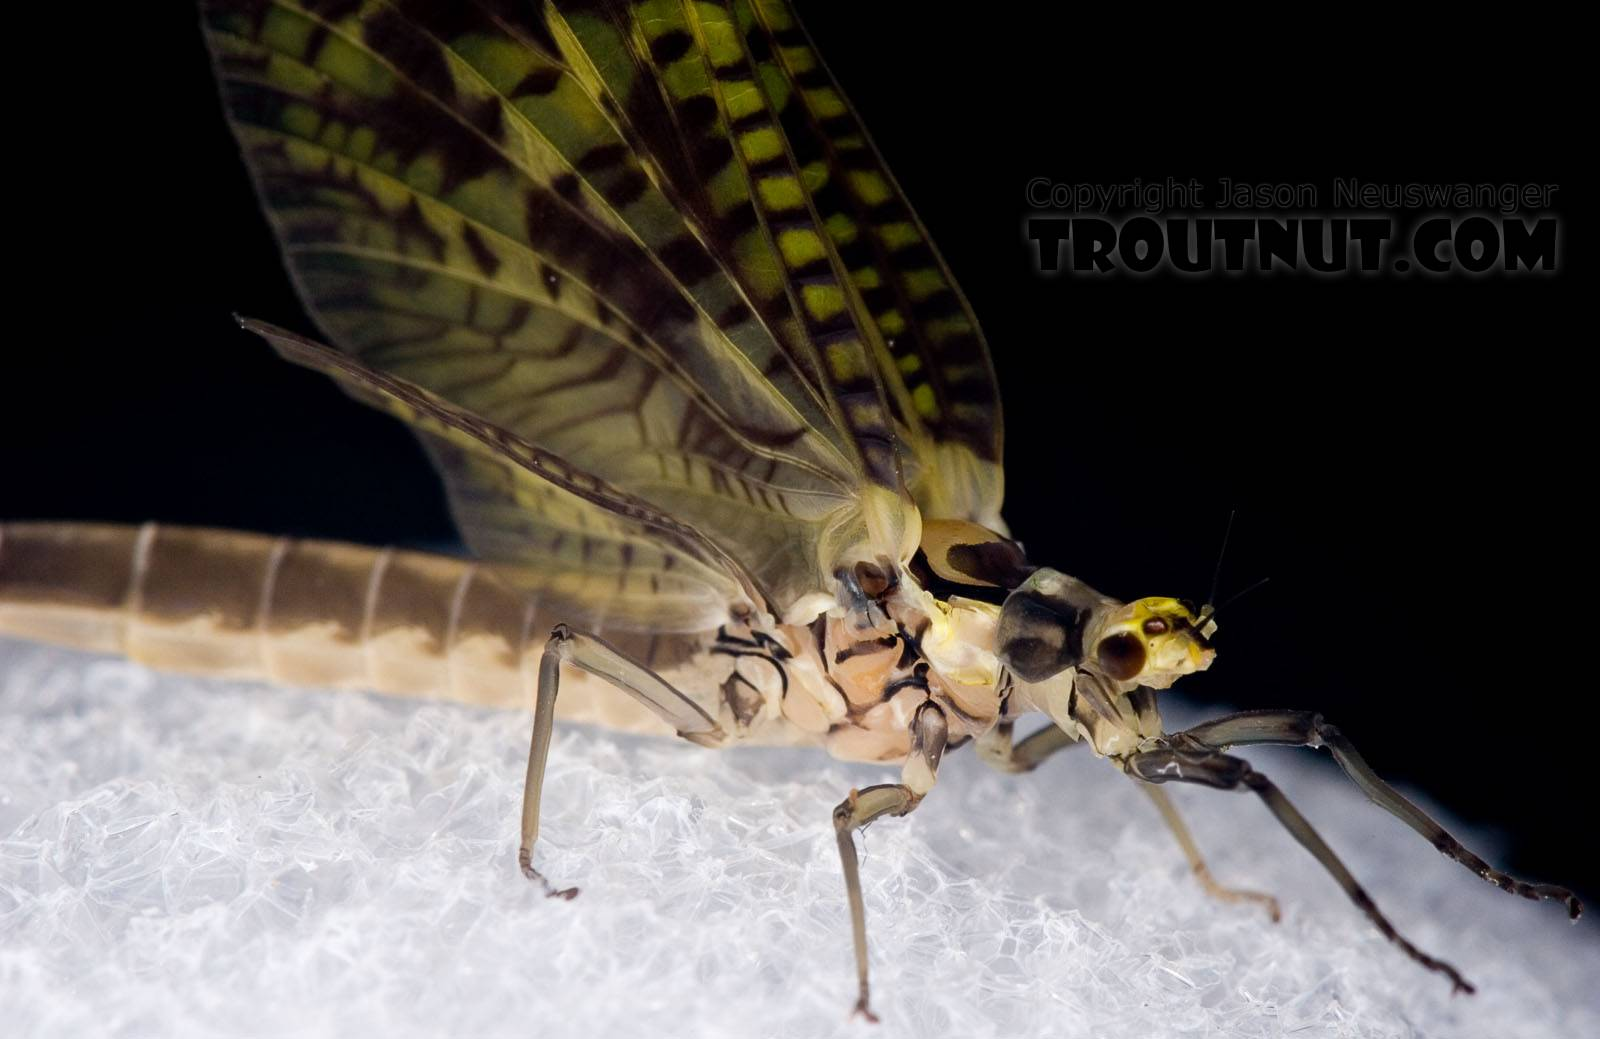 Female Ephemera guttulata (Green Drake) Mayfly Dun from the West Branch of the Delaware River in New York